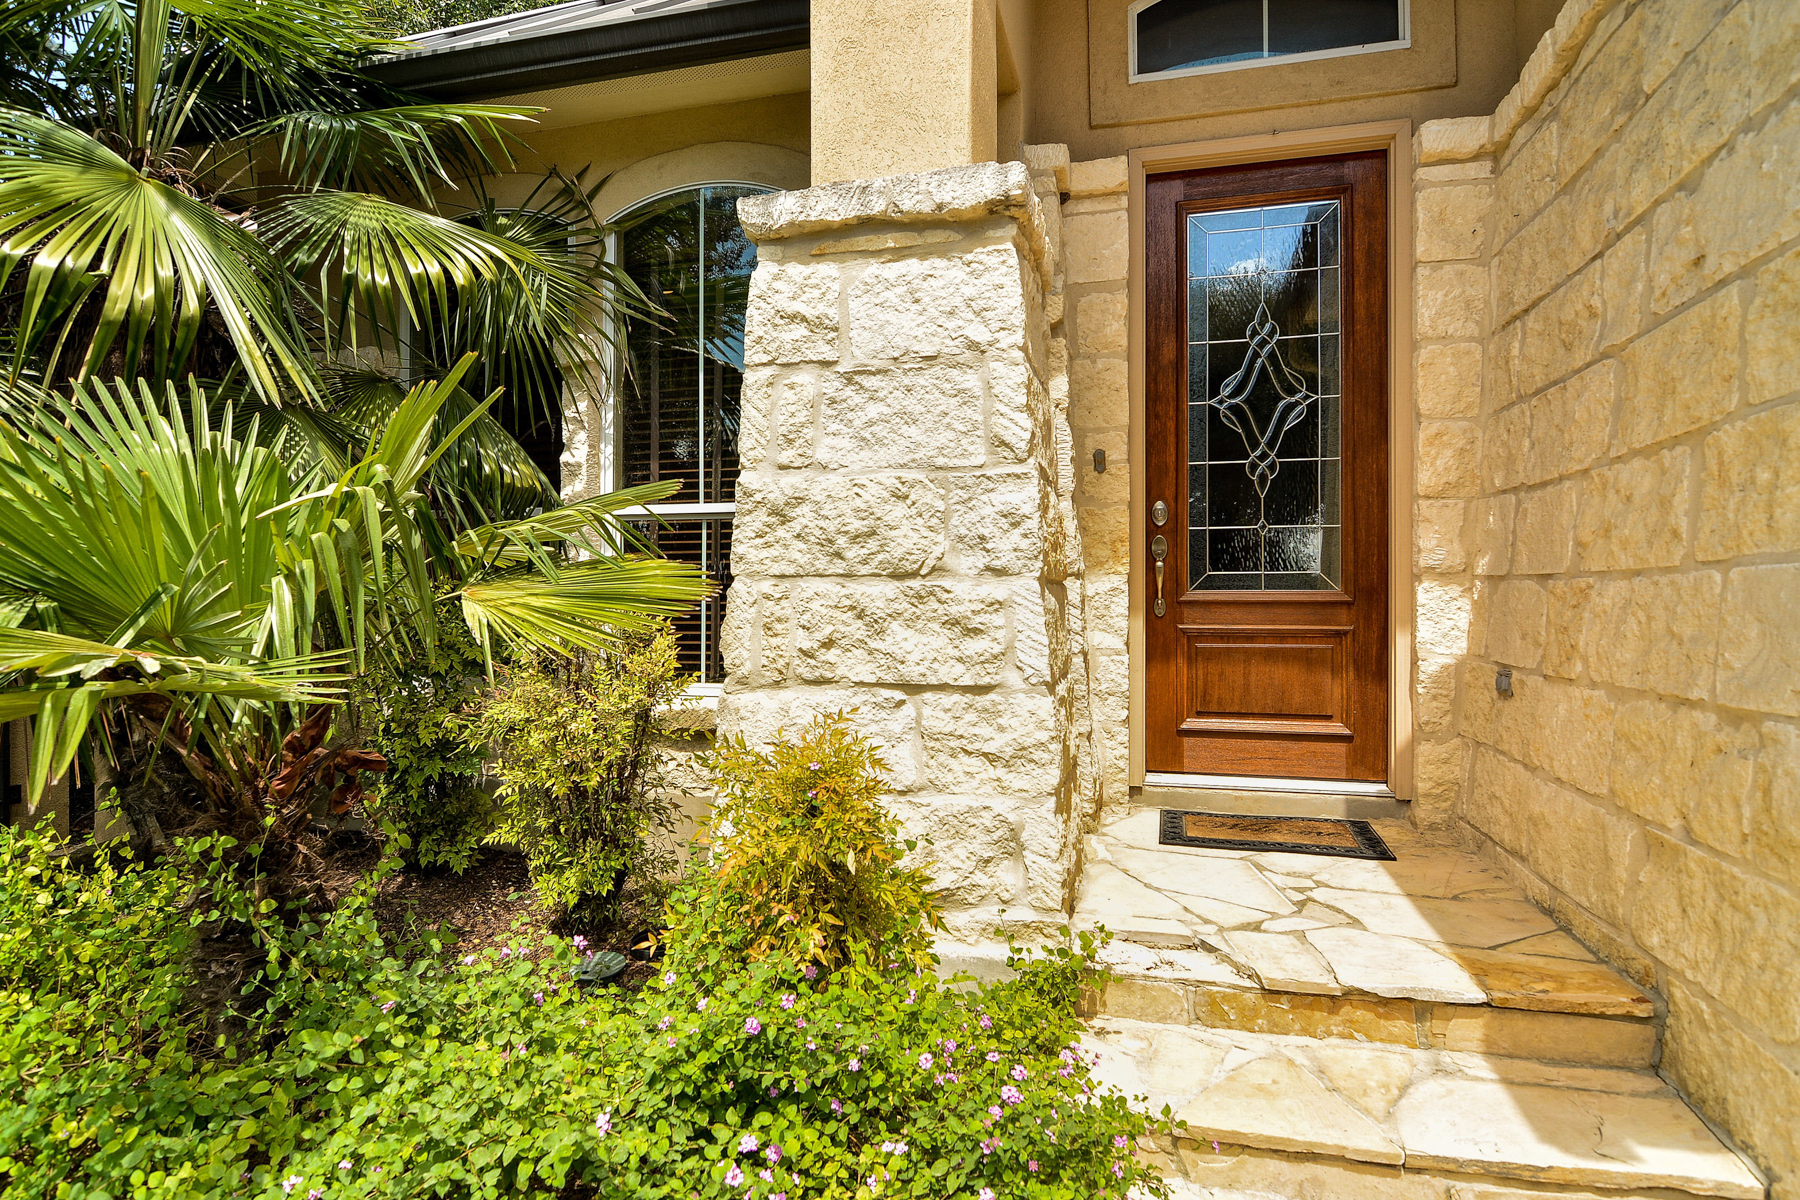 Additional photo for property listing at Gorgeous Gem in The Dominion 8 Worthsham Dr San Antonio, Texas 78257 United States